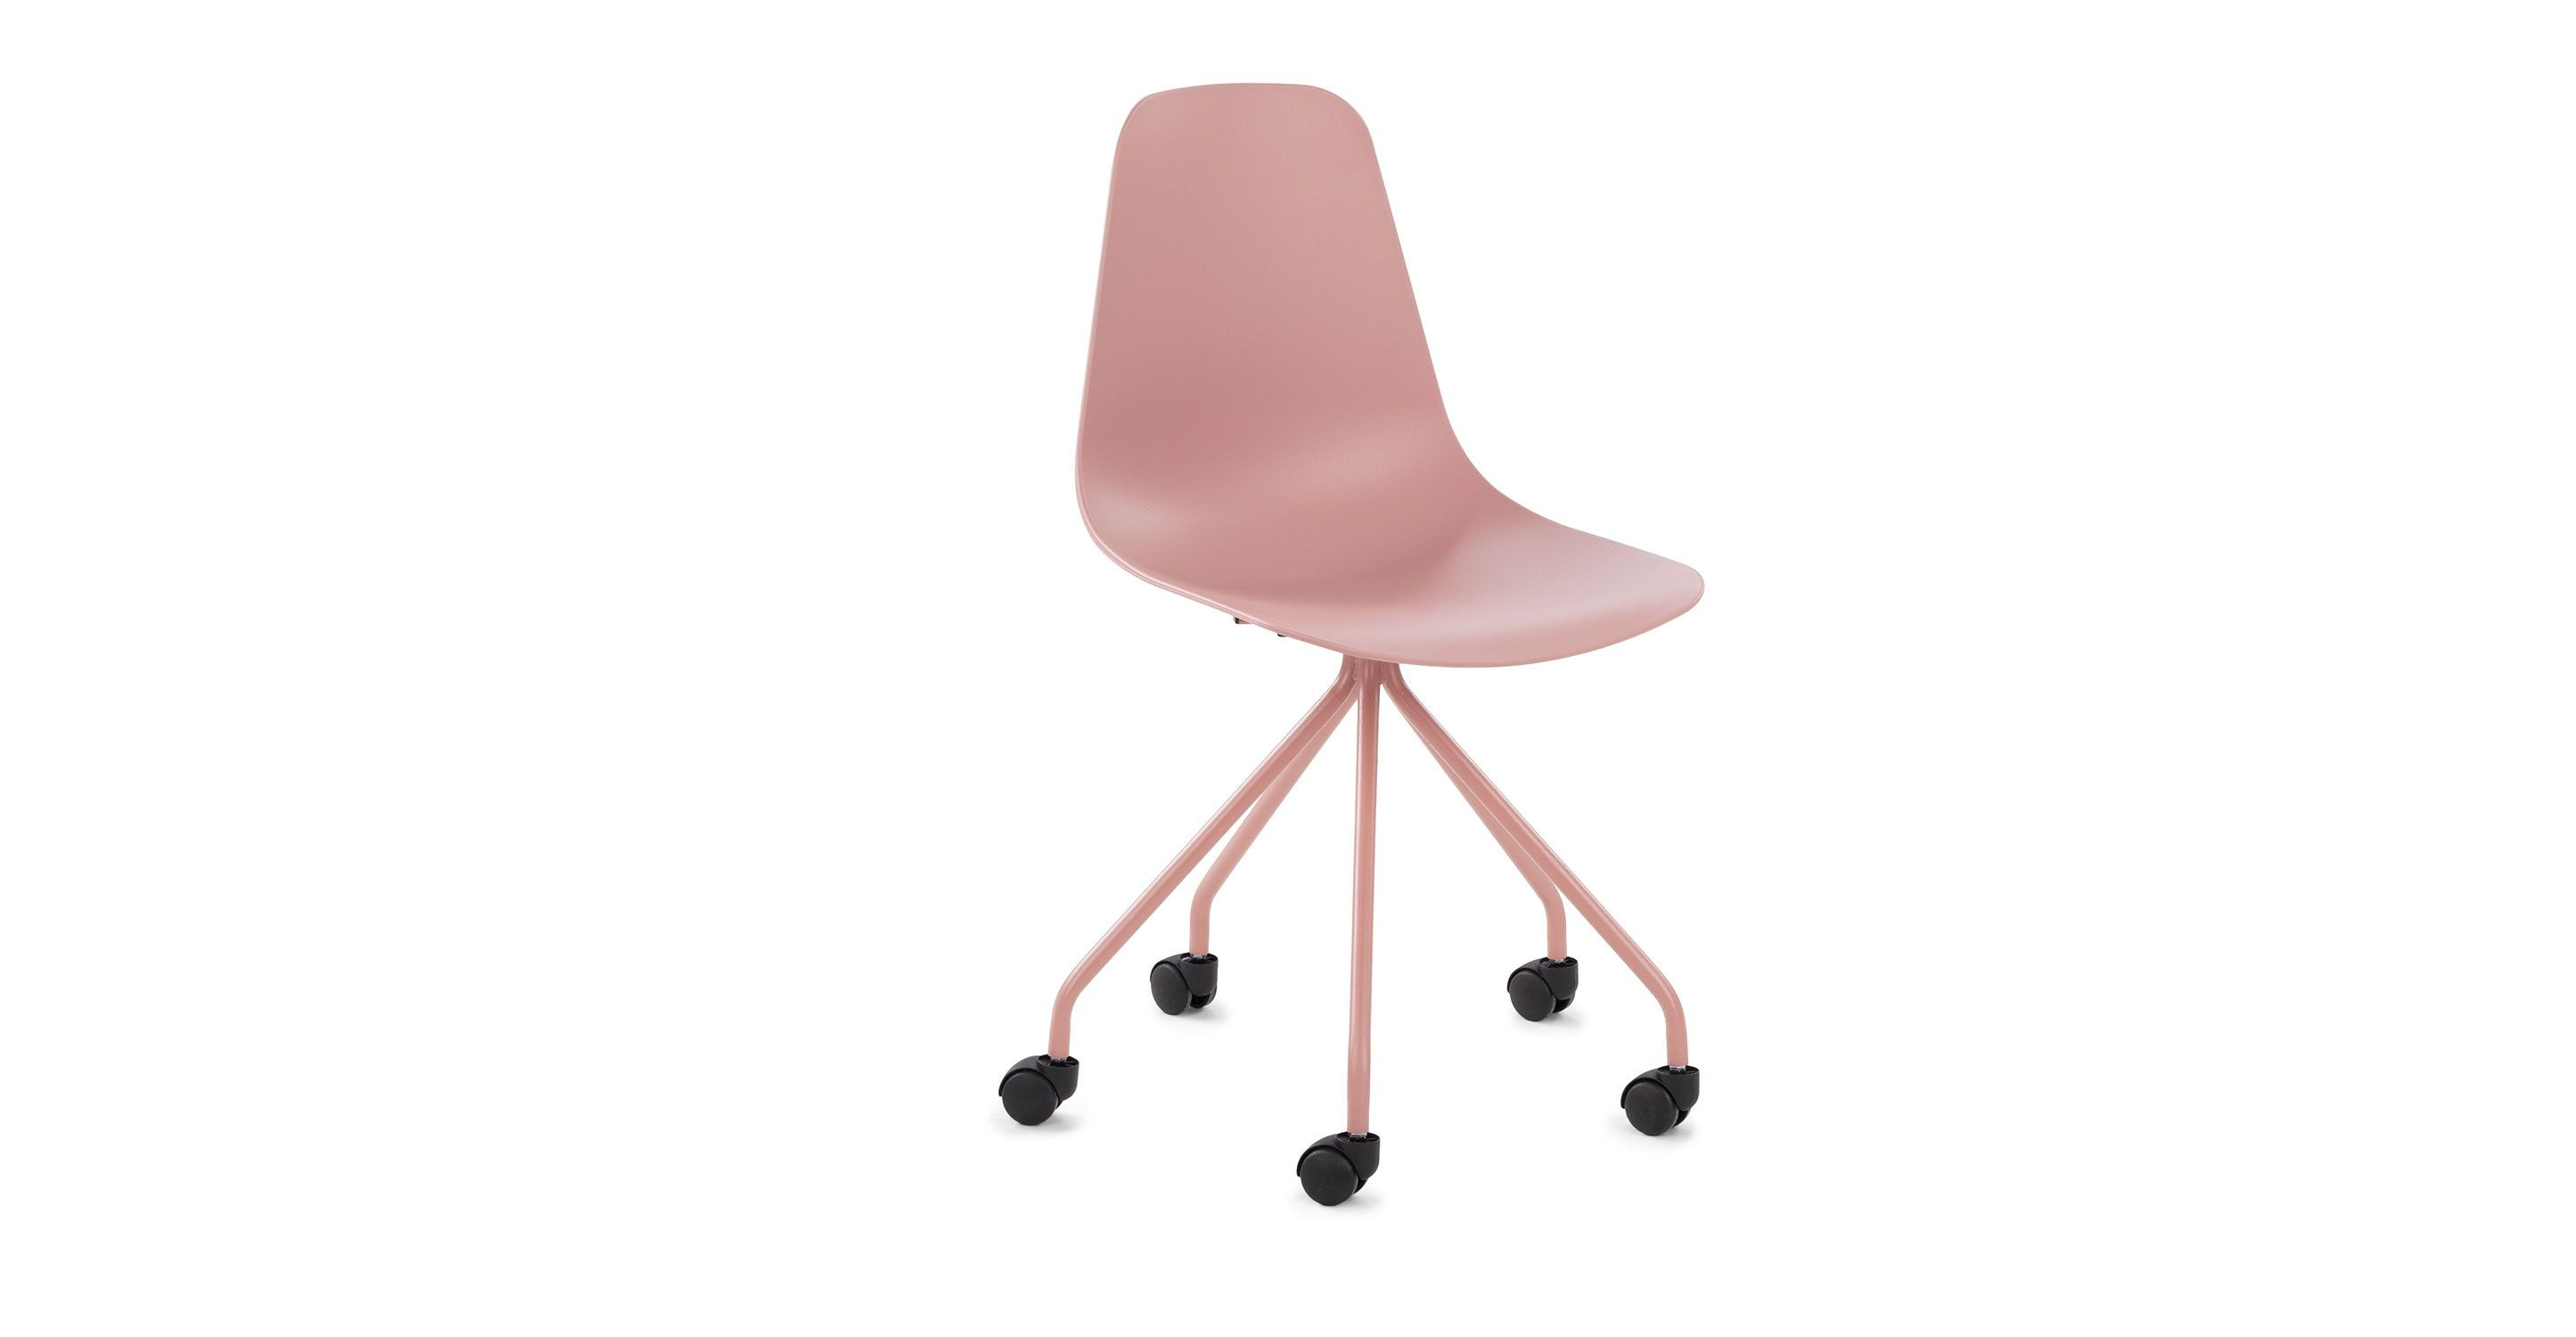 27+ Dusty pink office chair inspirations